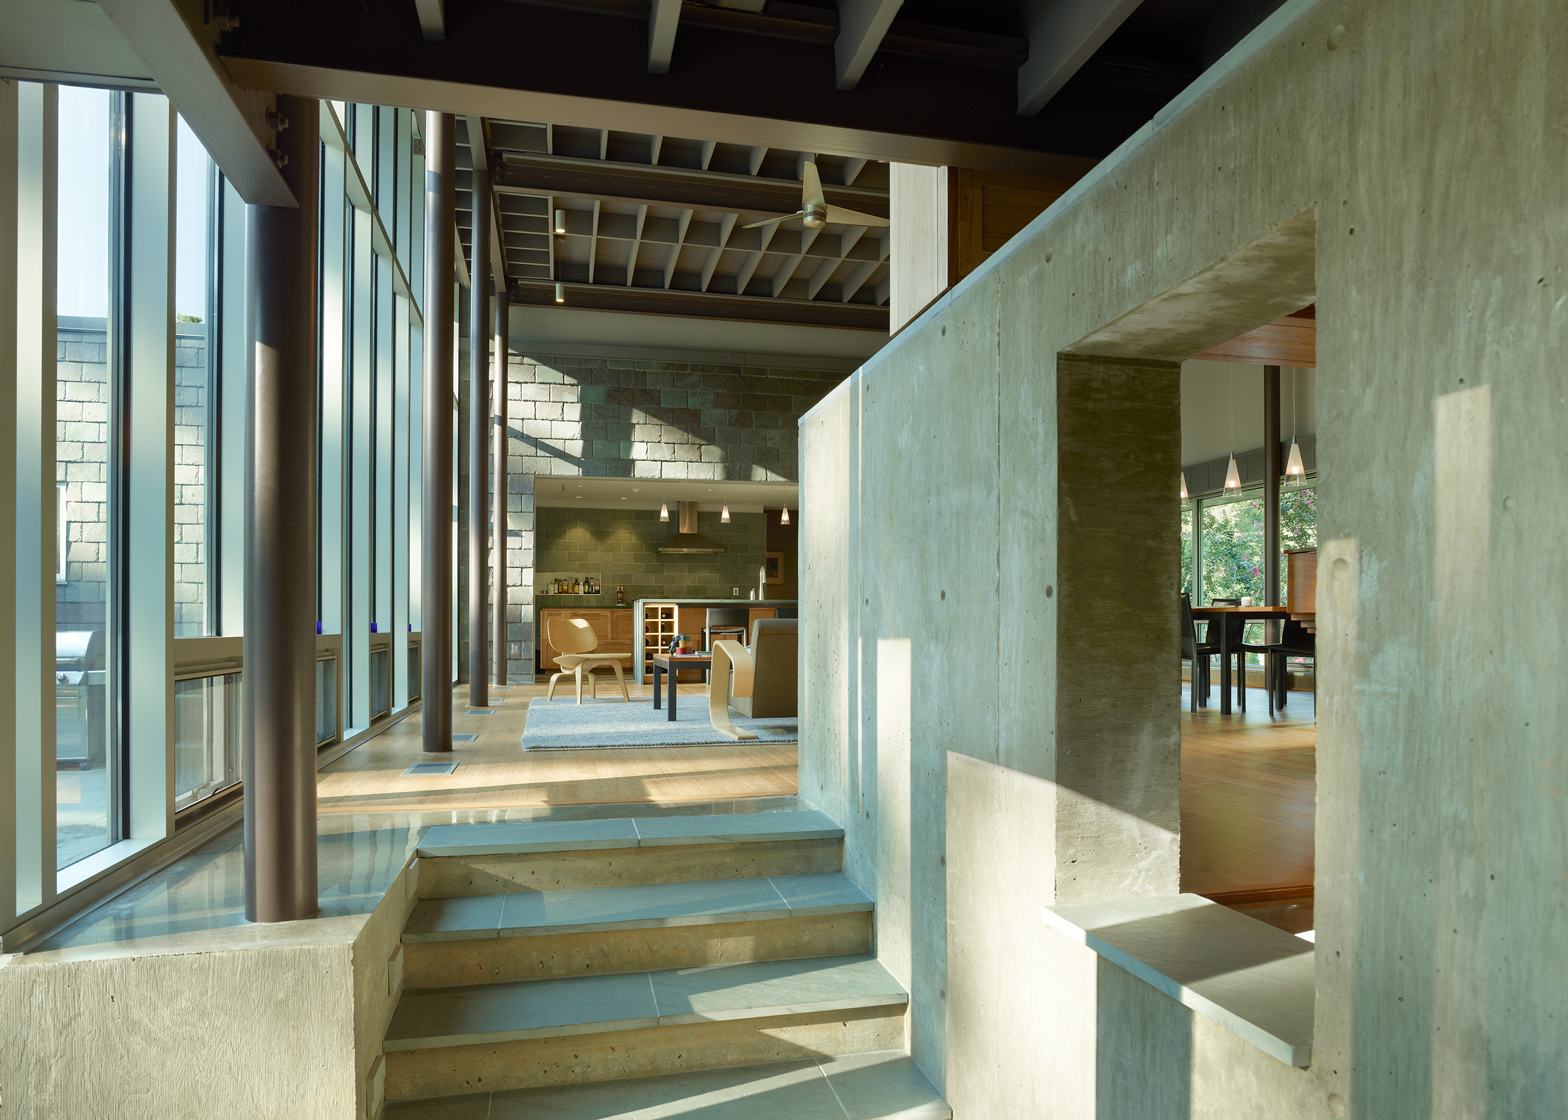 Oak Ridge House; Jackson, Mississippi by Duvall Decker Architects. Photography by Timothy Hursley